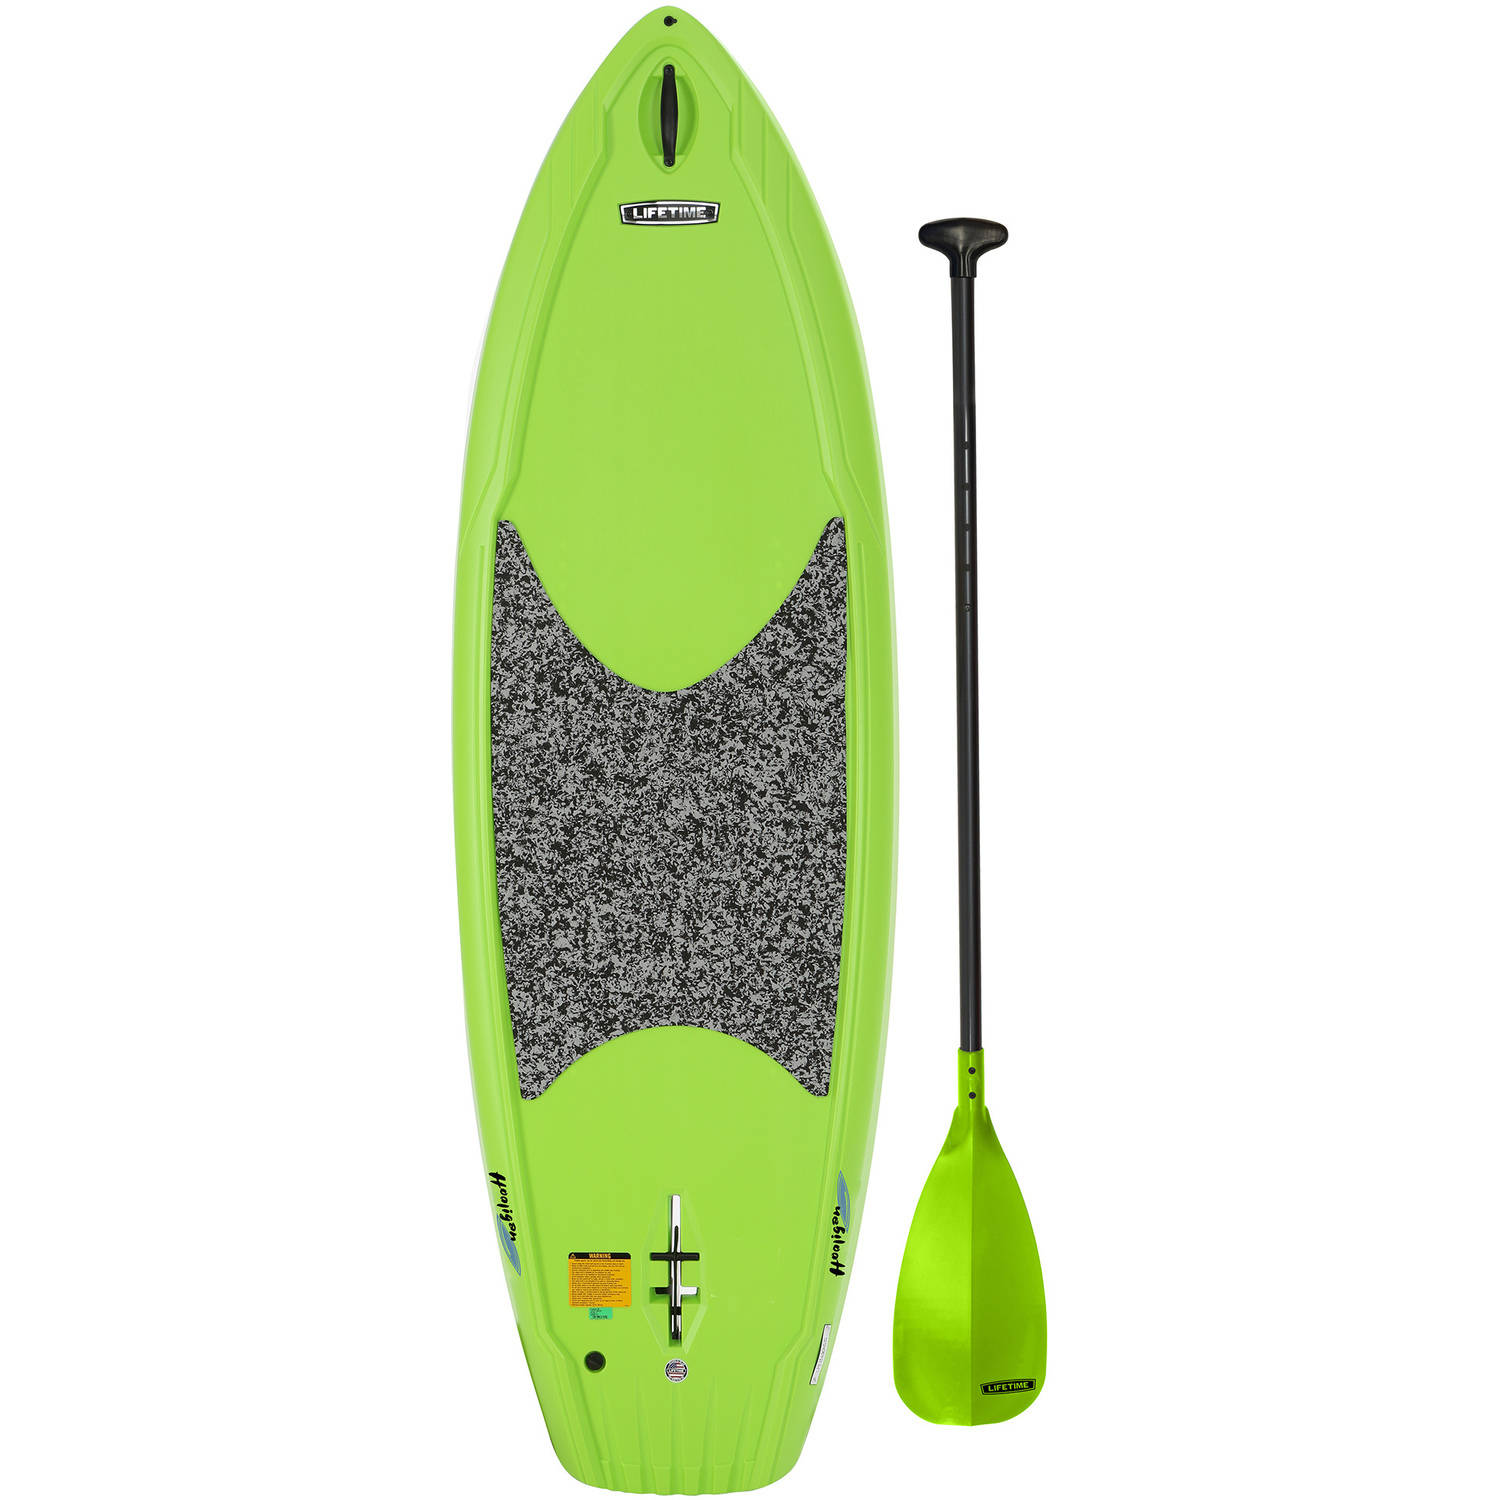 Lifetime Hooligan 80 Youth Stand-Up Paddleboard (Paddle Included), Lime, 90699